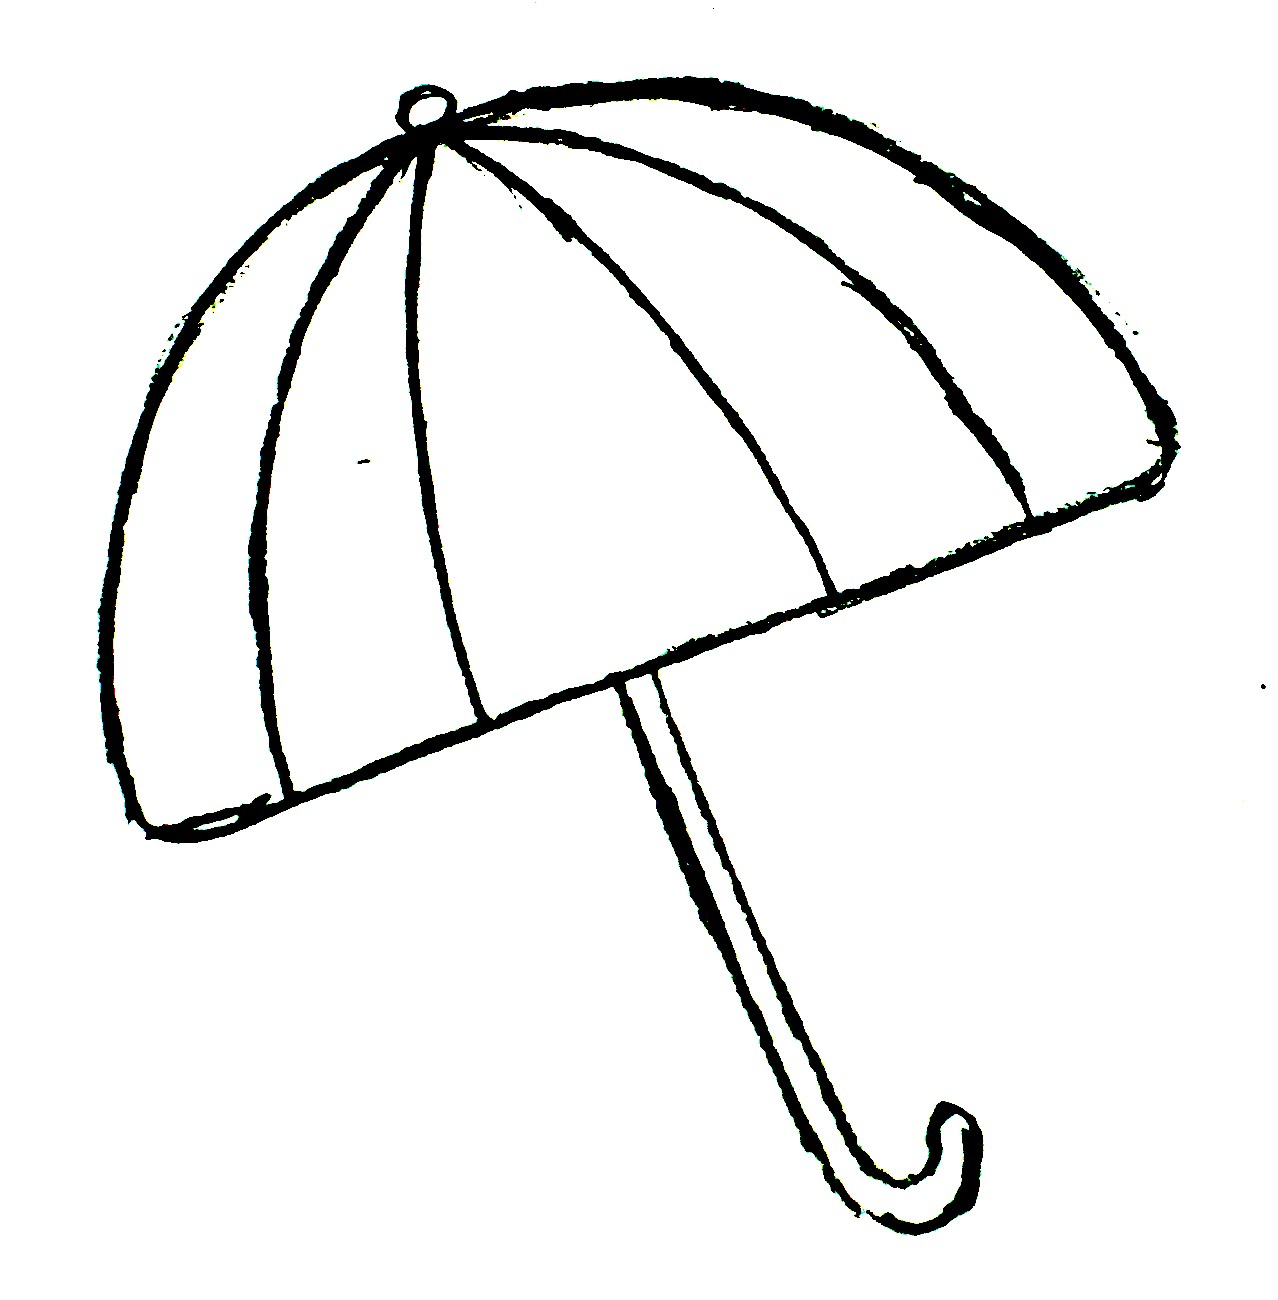 Umbrella coloring pages - Coloring Pages & Pictures - IMAGIXS ... A Coloring Page